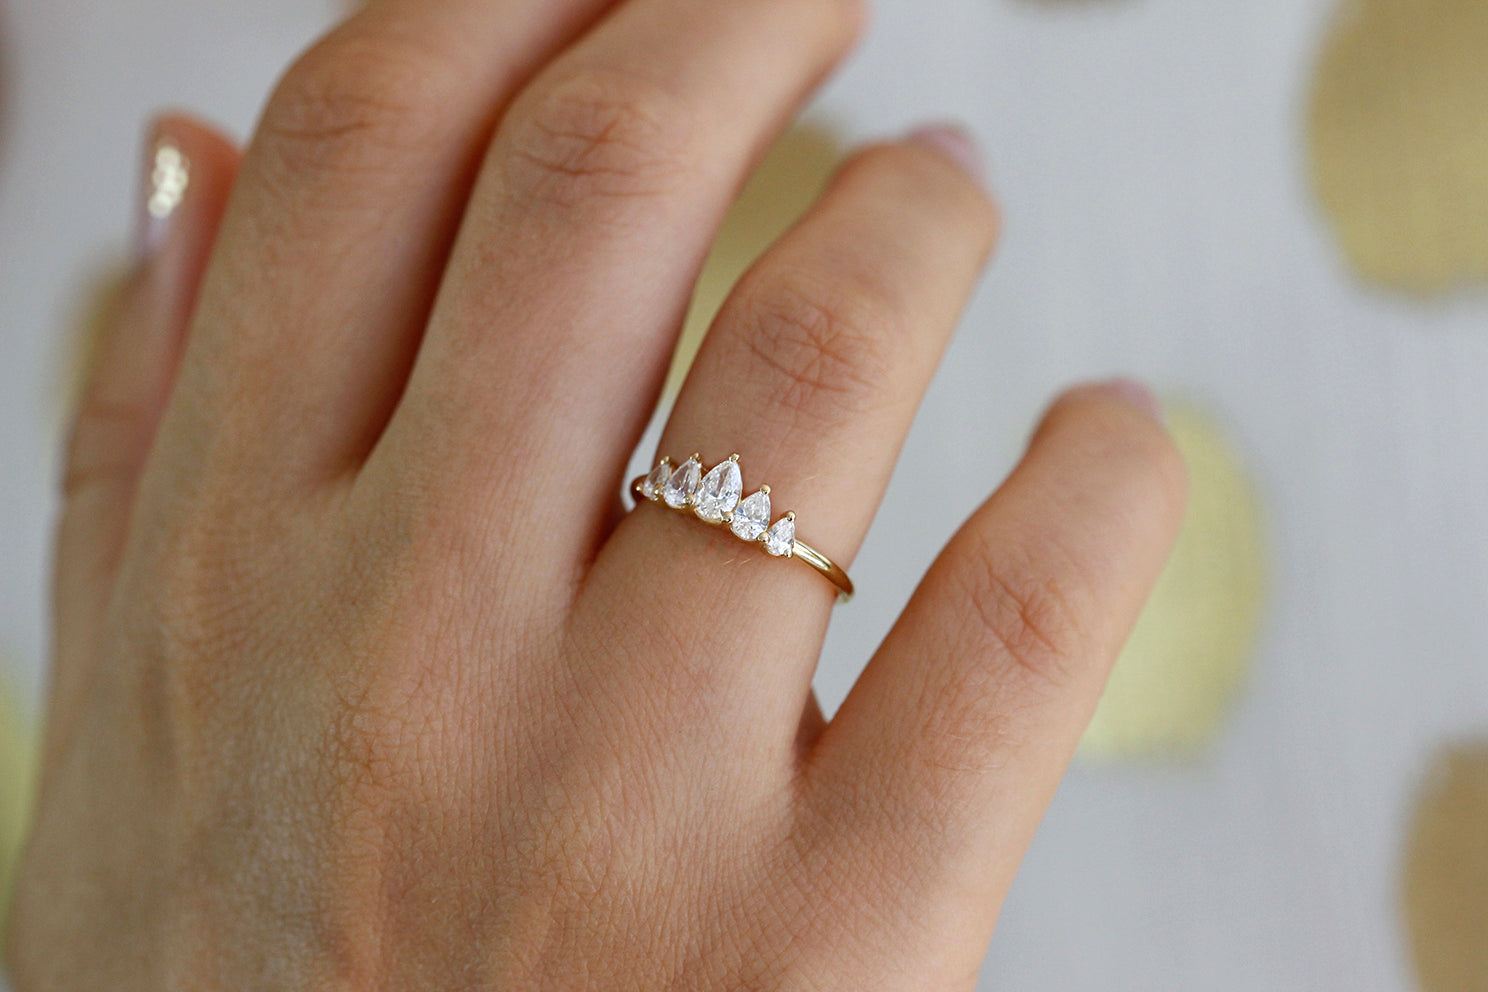 Unique Pear Diamond Engagement Ring On Ring Finger